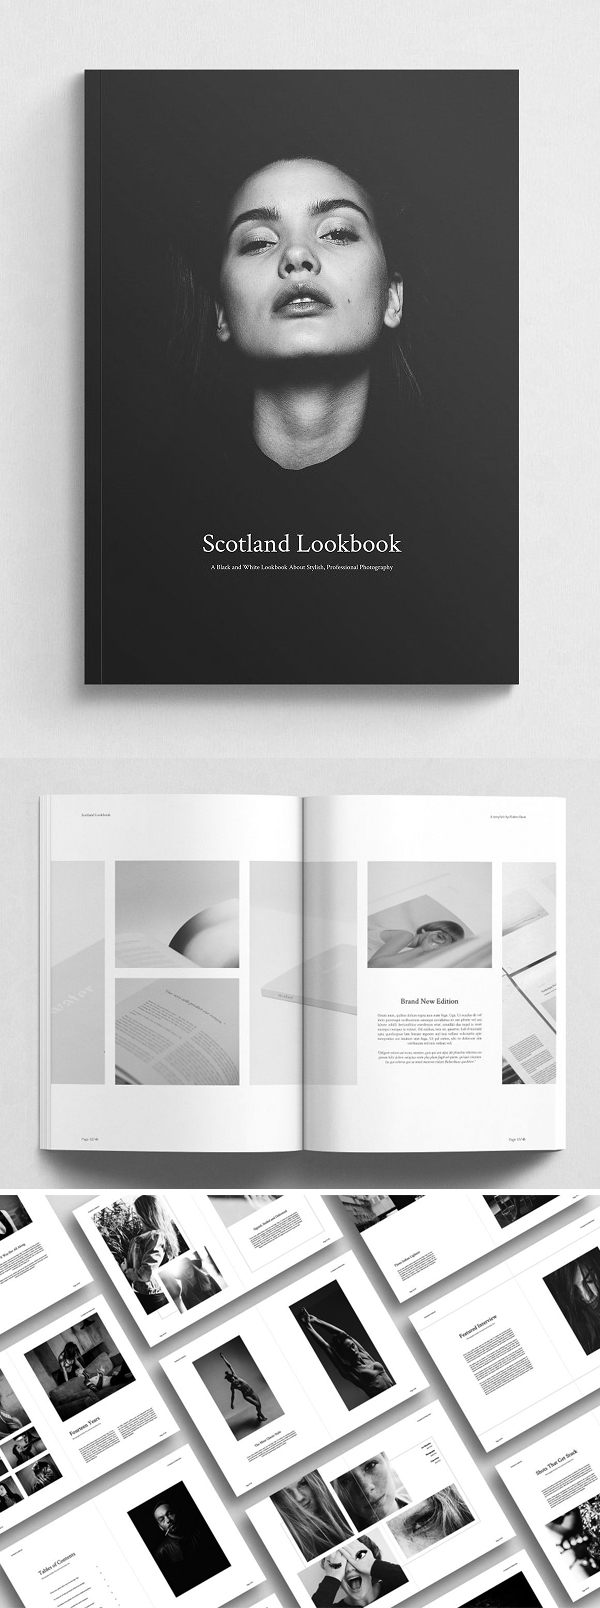 Scotland Lookbook